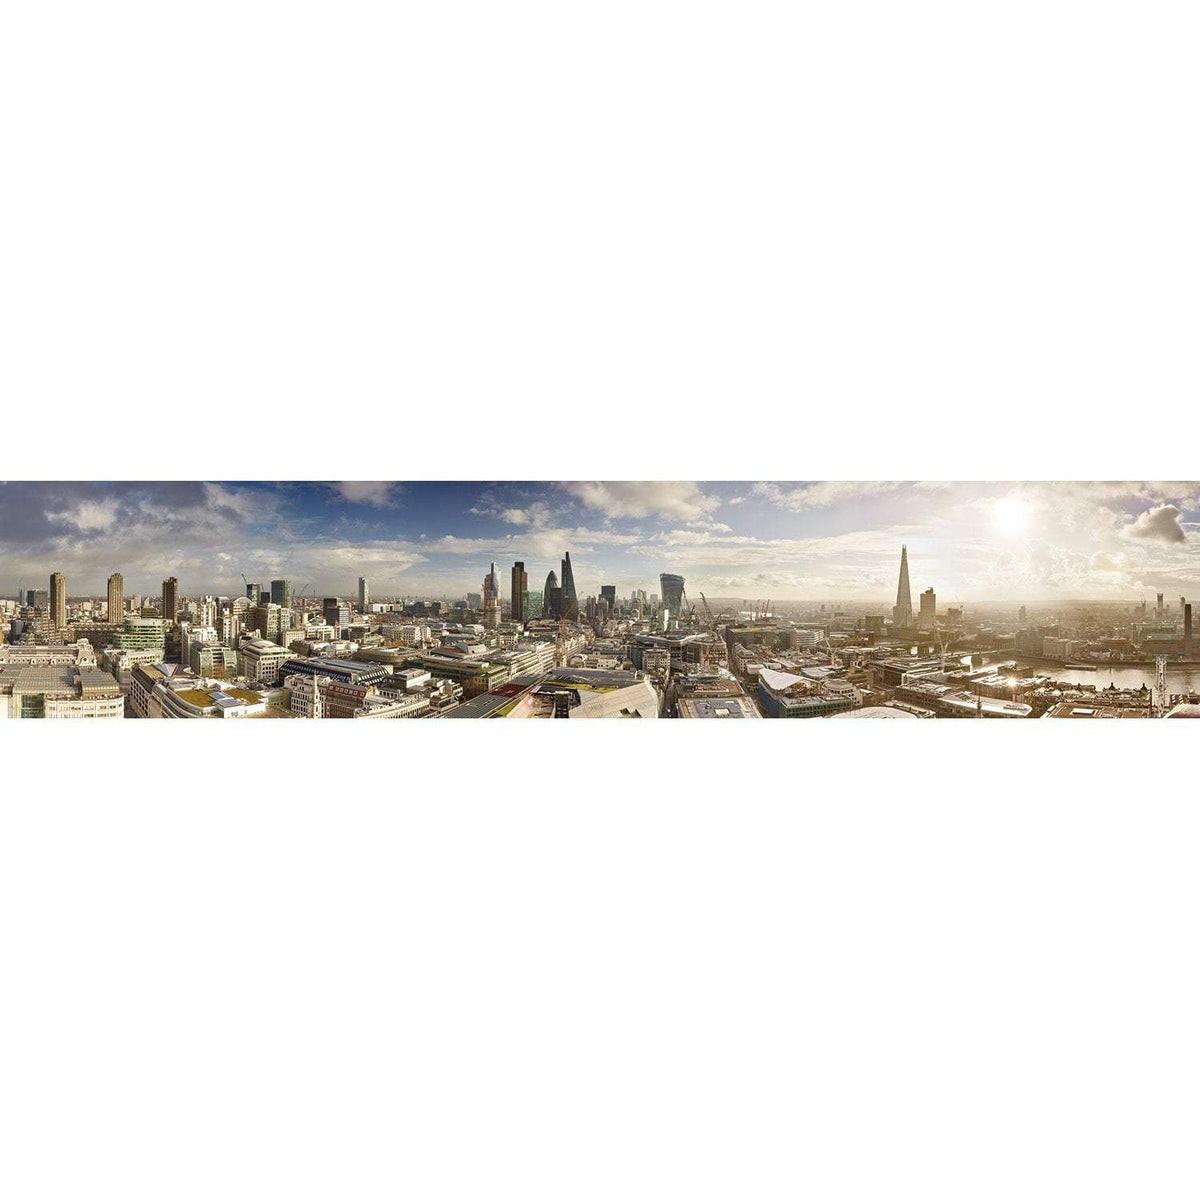 Wall Acoustics Full Size Mural Muffle Mural - London Skyline, Day Full Size Mural